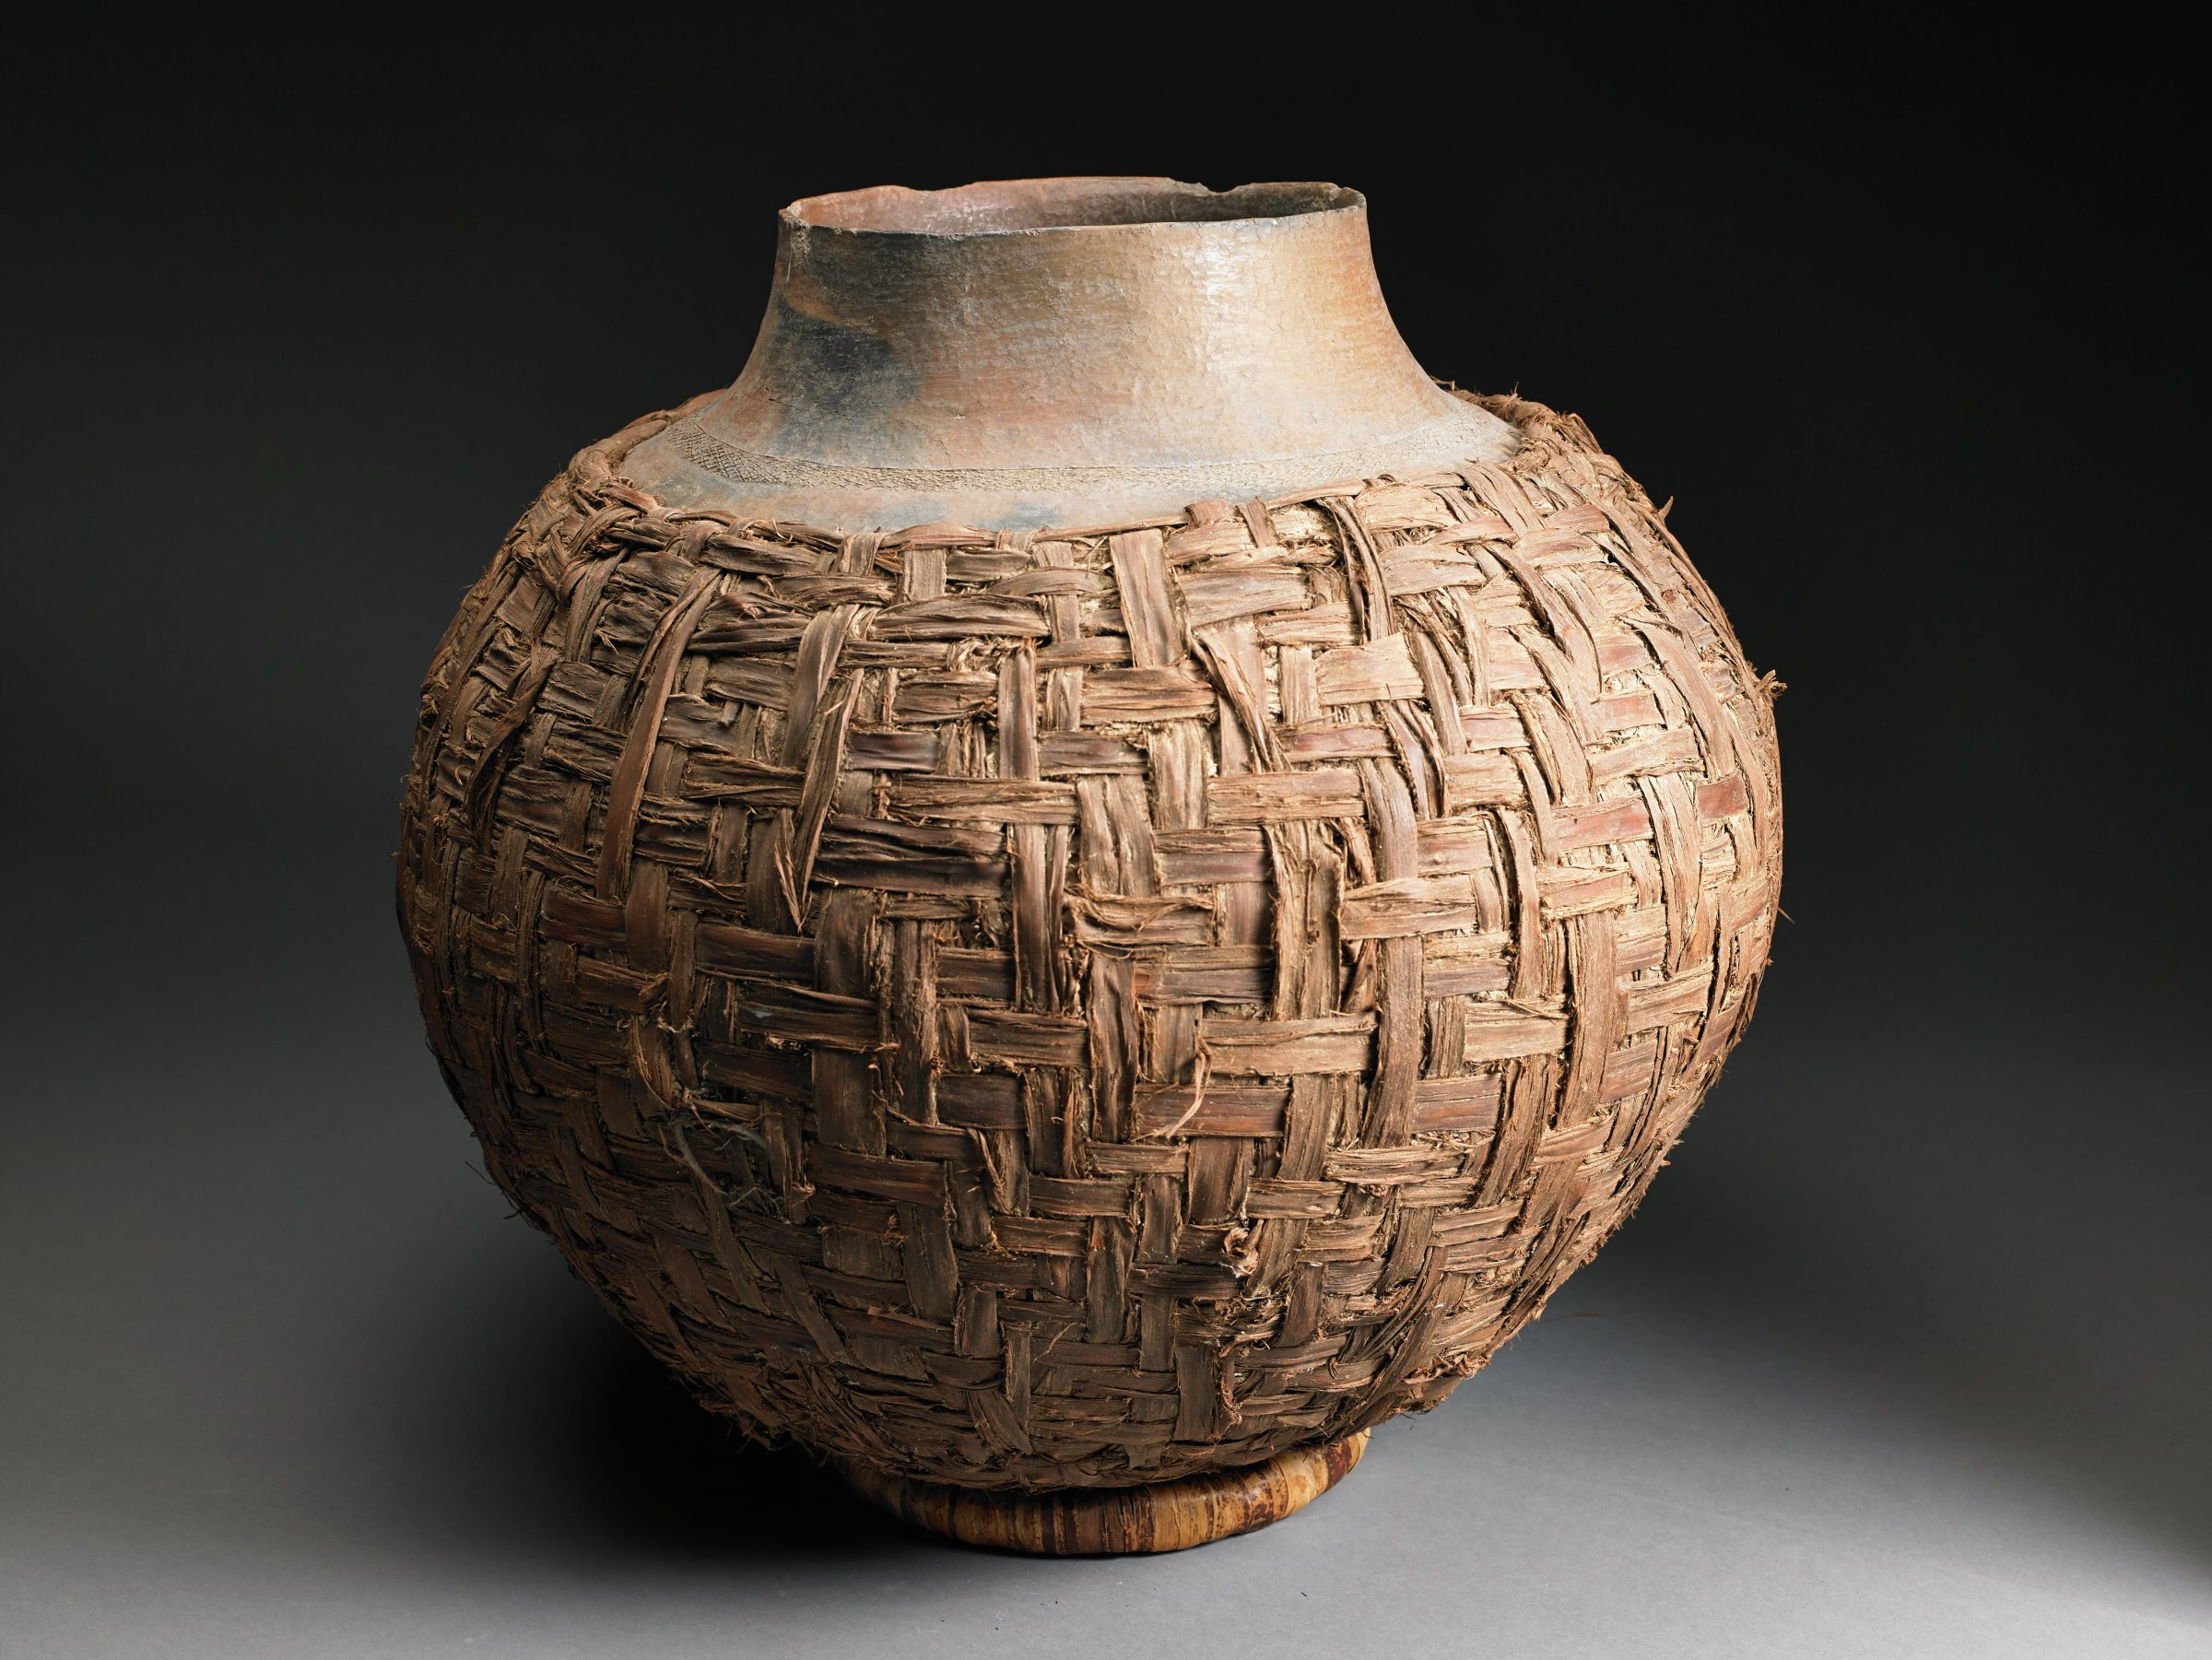 Globular vessel with narrow neck and mouth has woven basketry cover